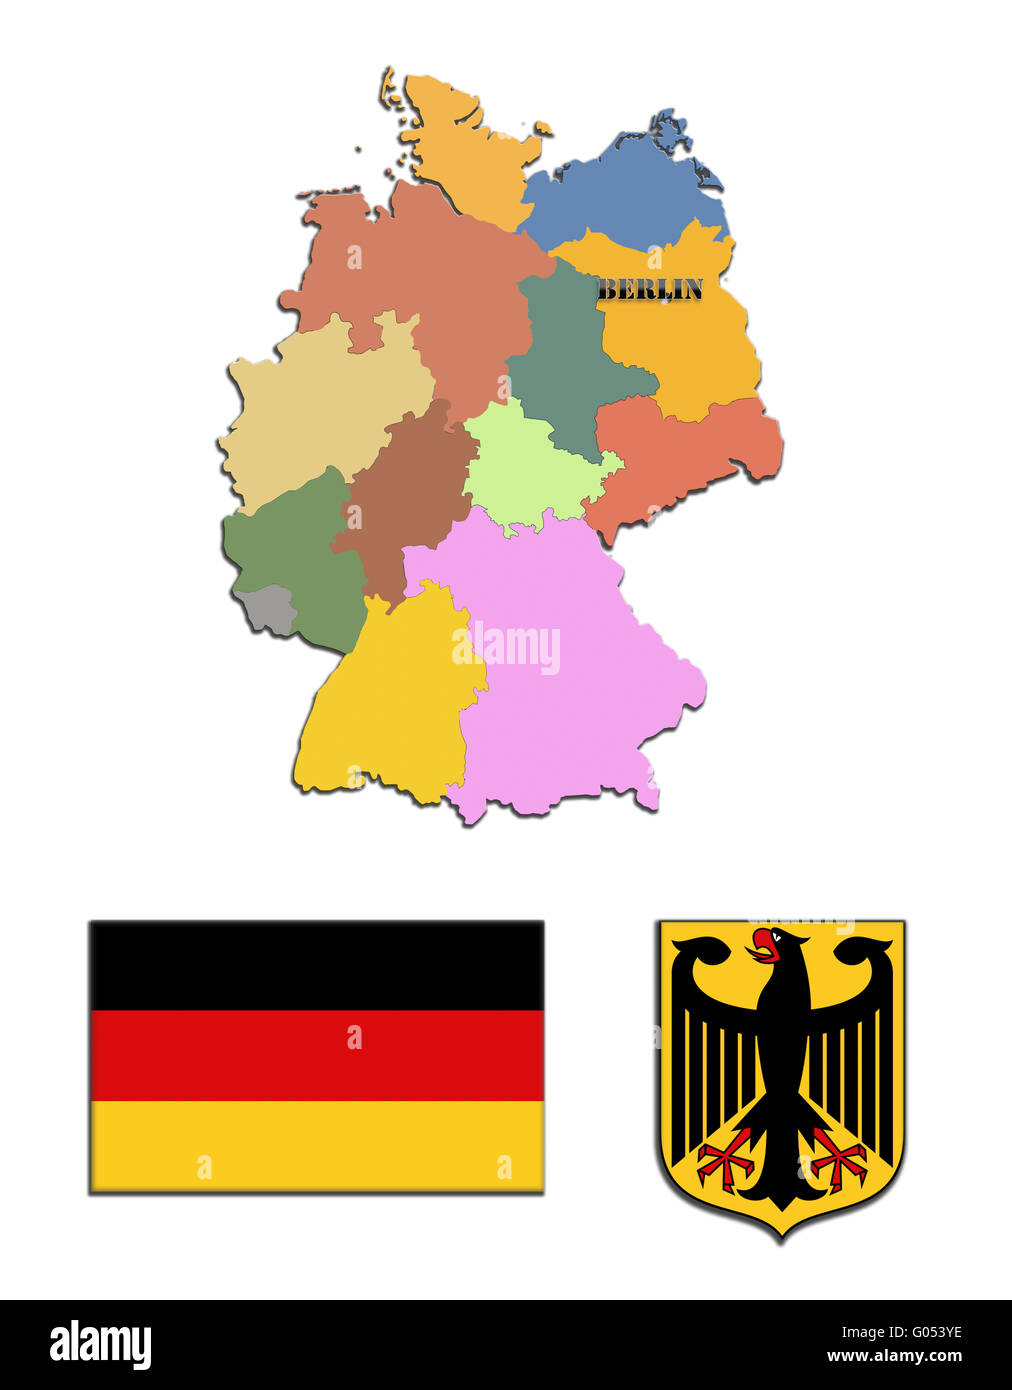 Coloured silhouette of the map and the herb of Ger - Stock Image